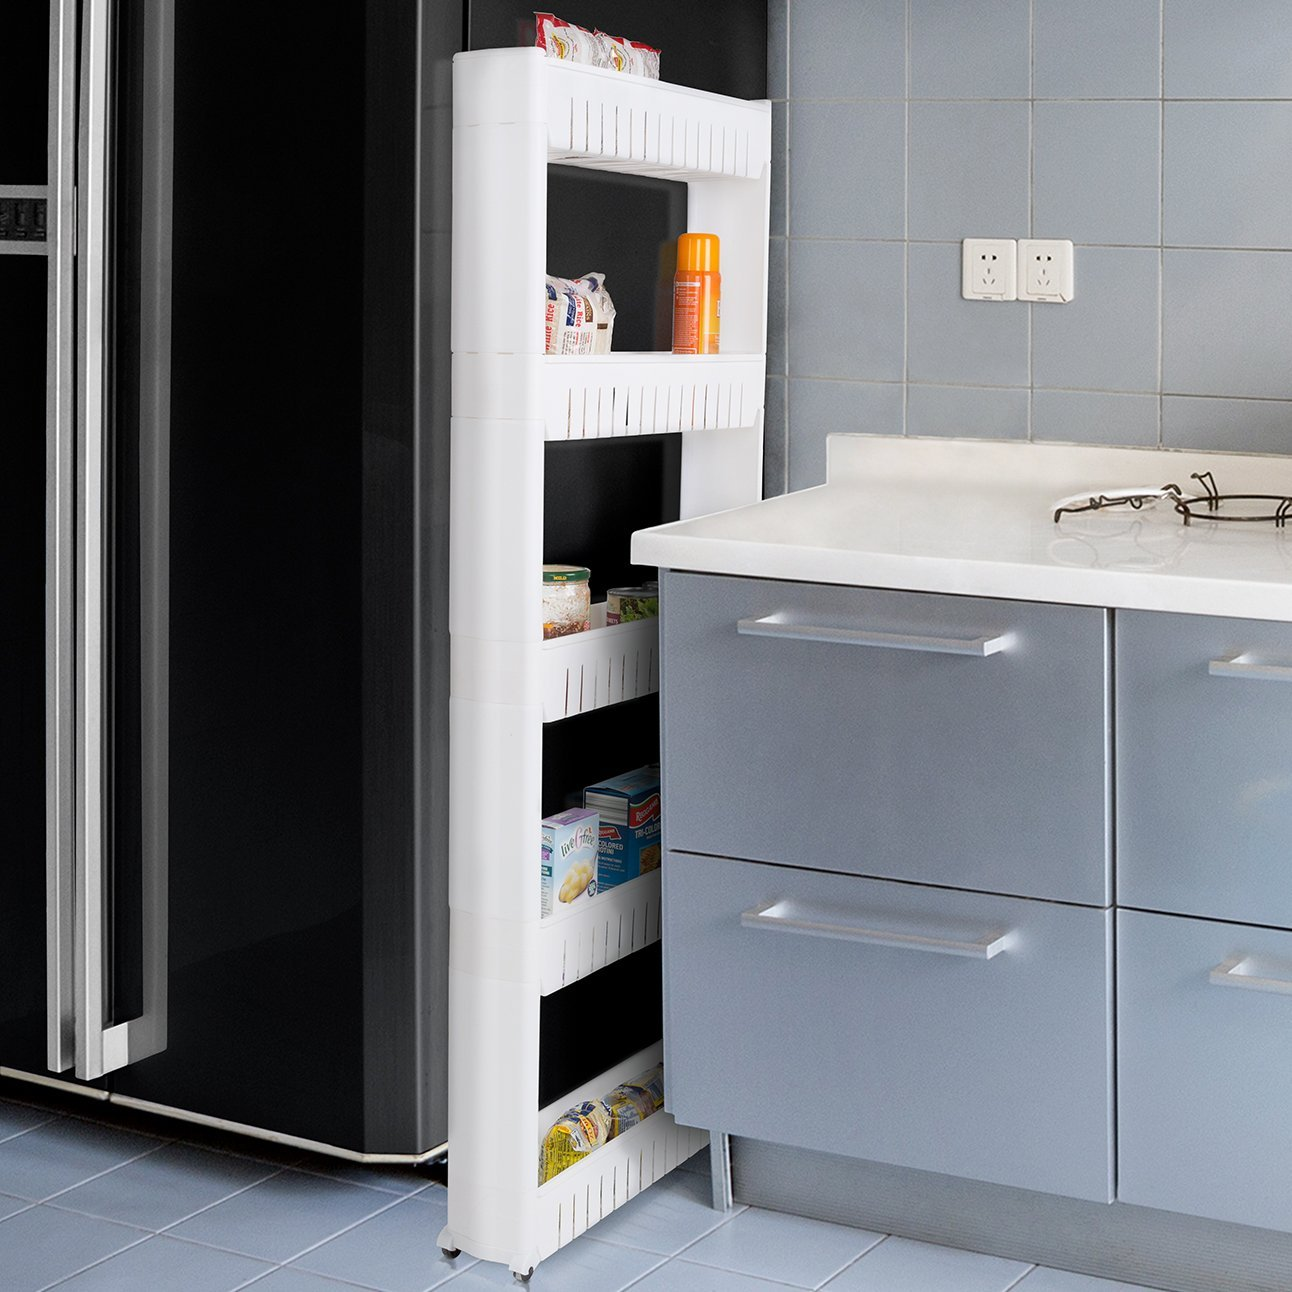 slim slide out pantry shelf for small kitchen